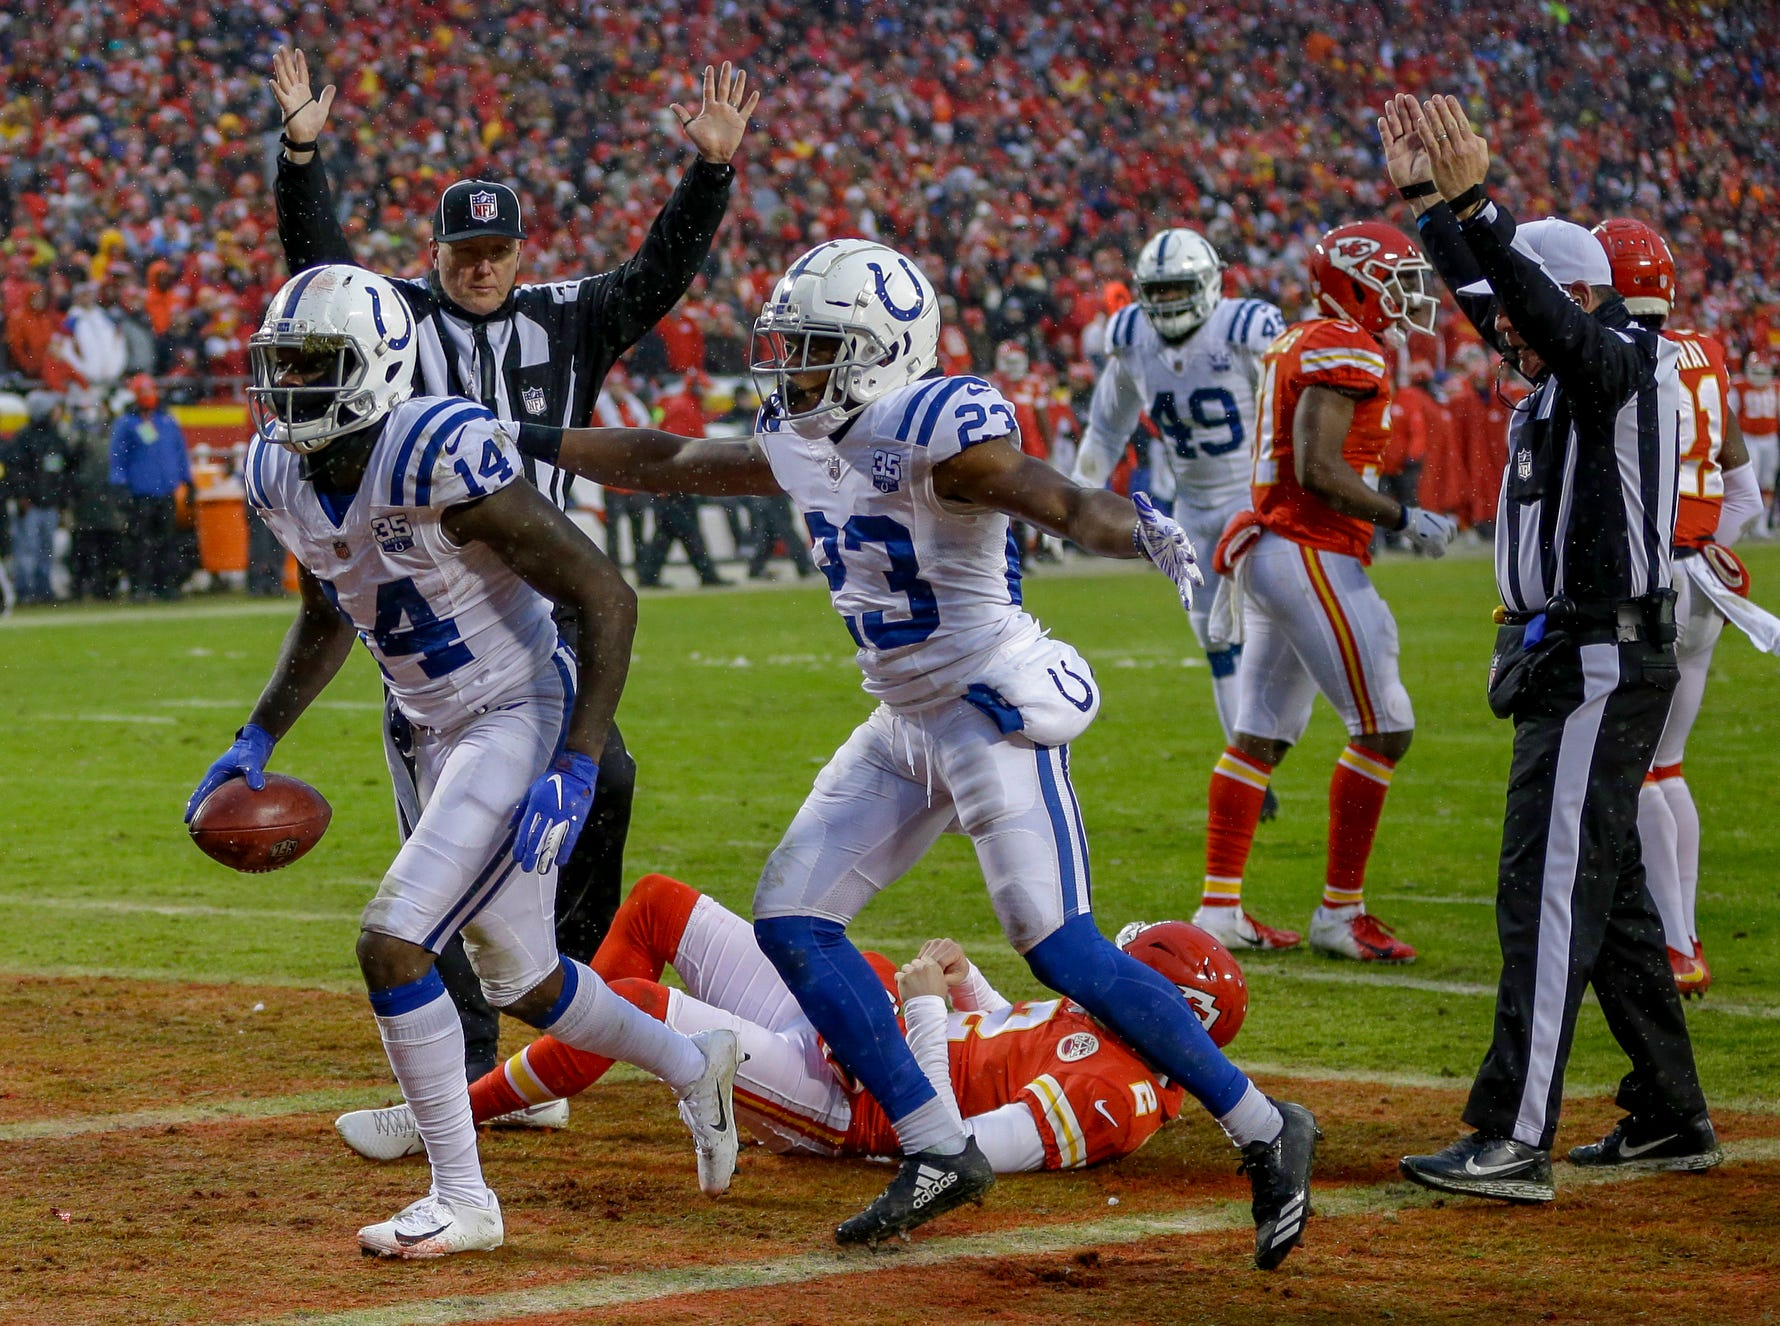 Indianapolis Colts wide receiver Zach Pascal (14) pulls in a blocked punt for a touchdown against the Kansas City Chiefs in the second quarter at Arrowhead Stadium in Kansas City, Mo., on Saturday, Jan. 12, 2019.